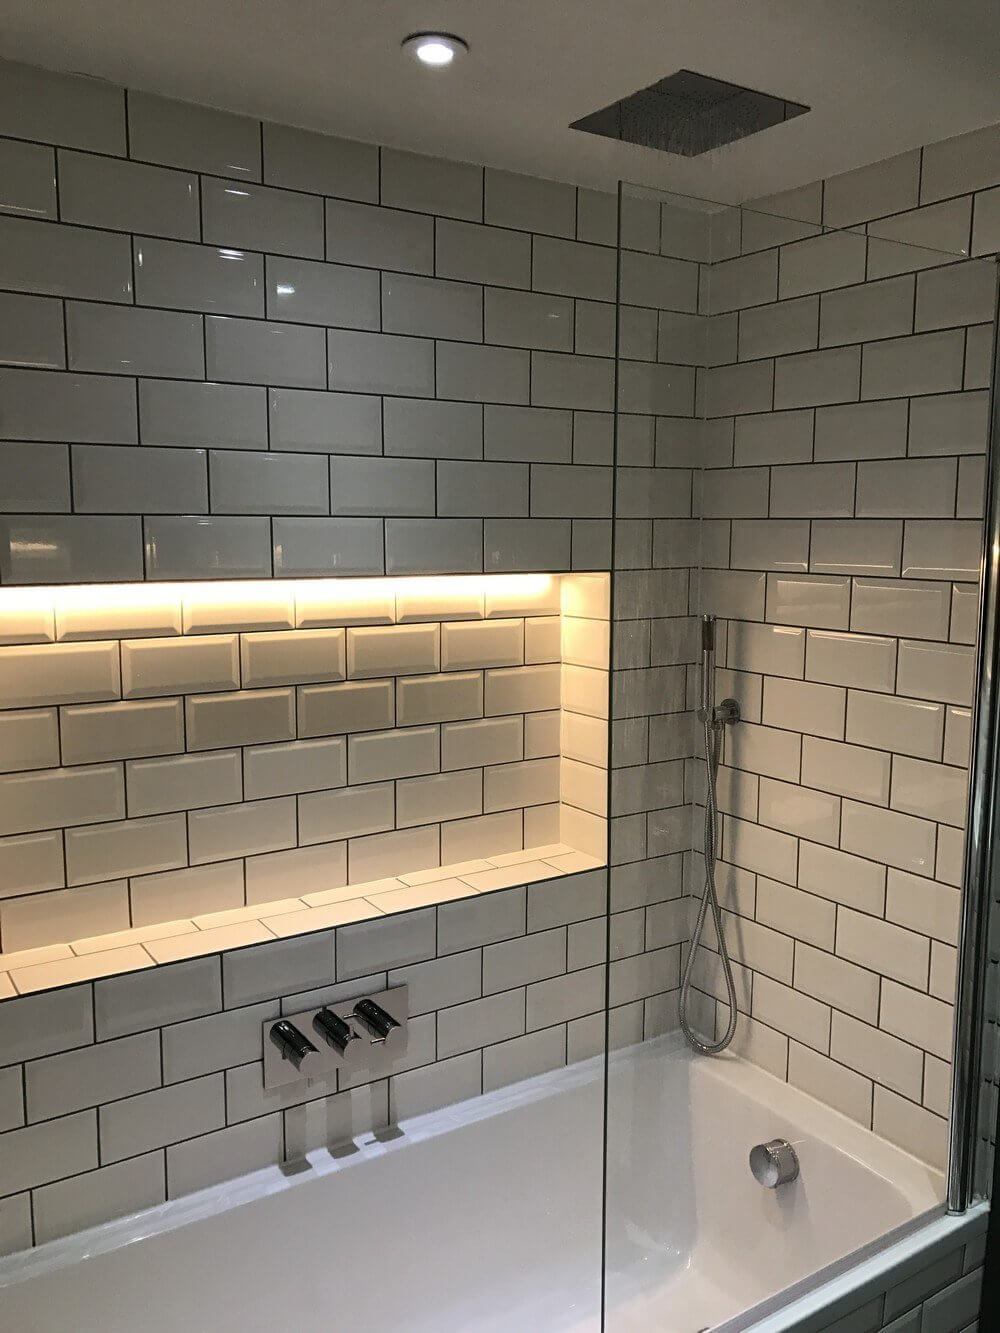 Bath and Shower Room Renovation in East London 3